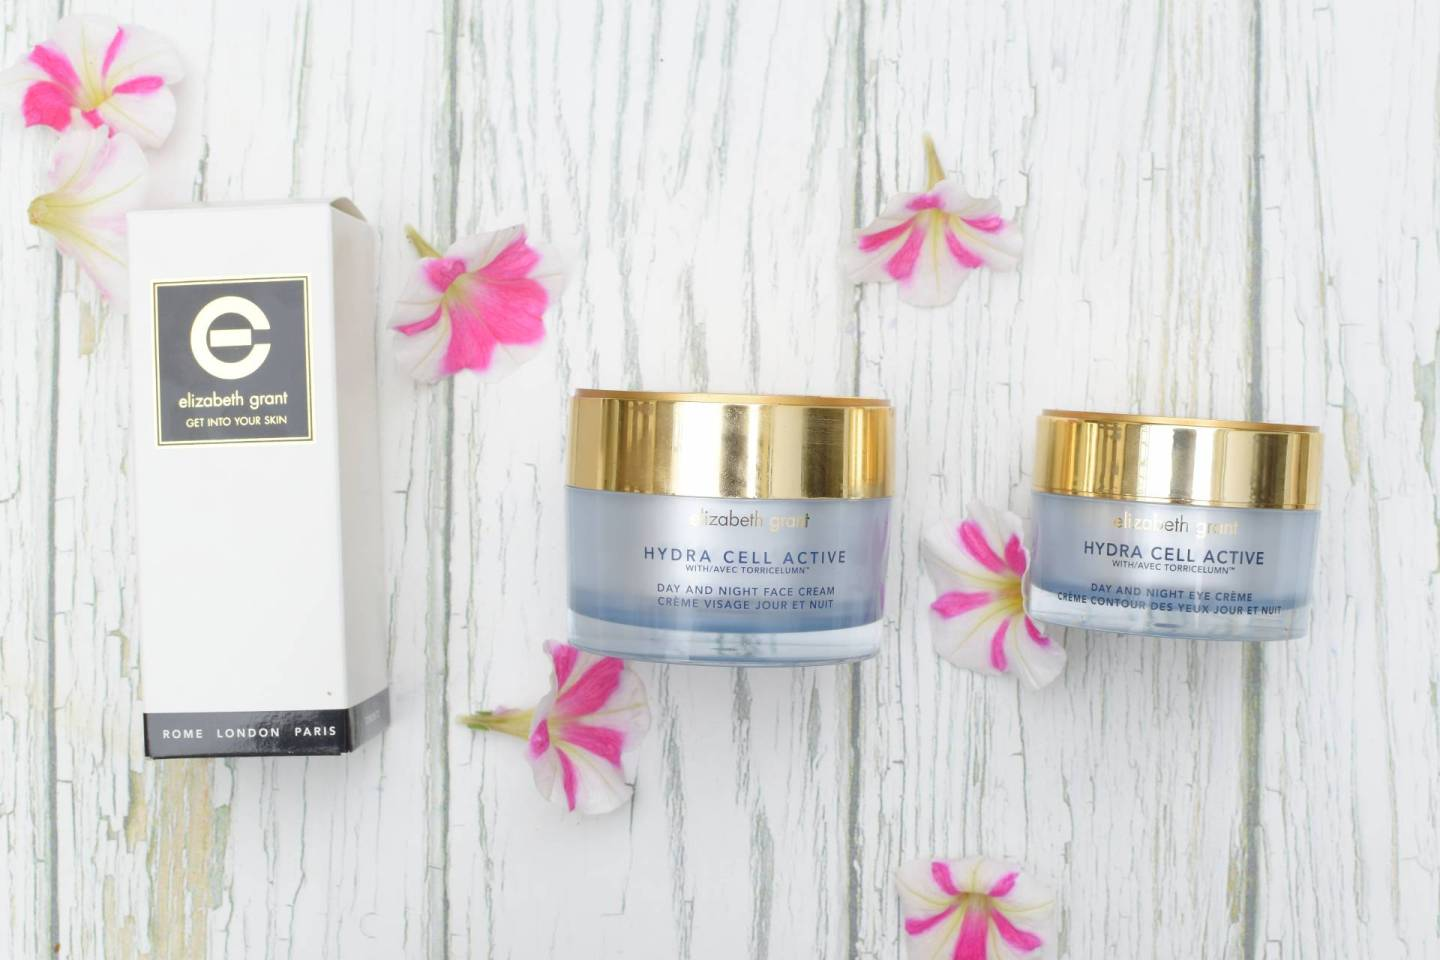 Elizabeth Grant Hydra Active Skin Care Reviewed.